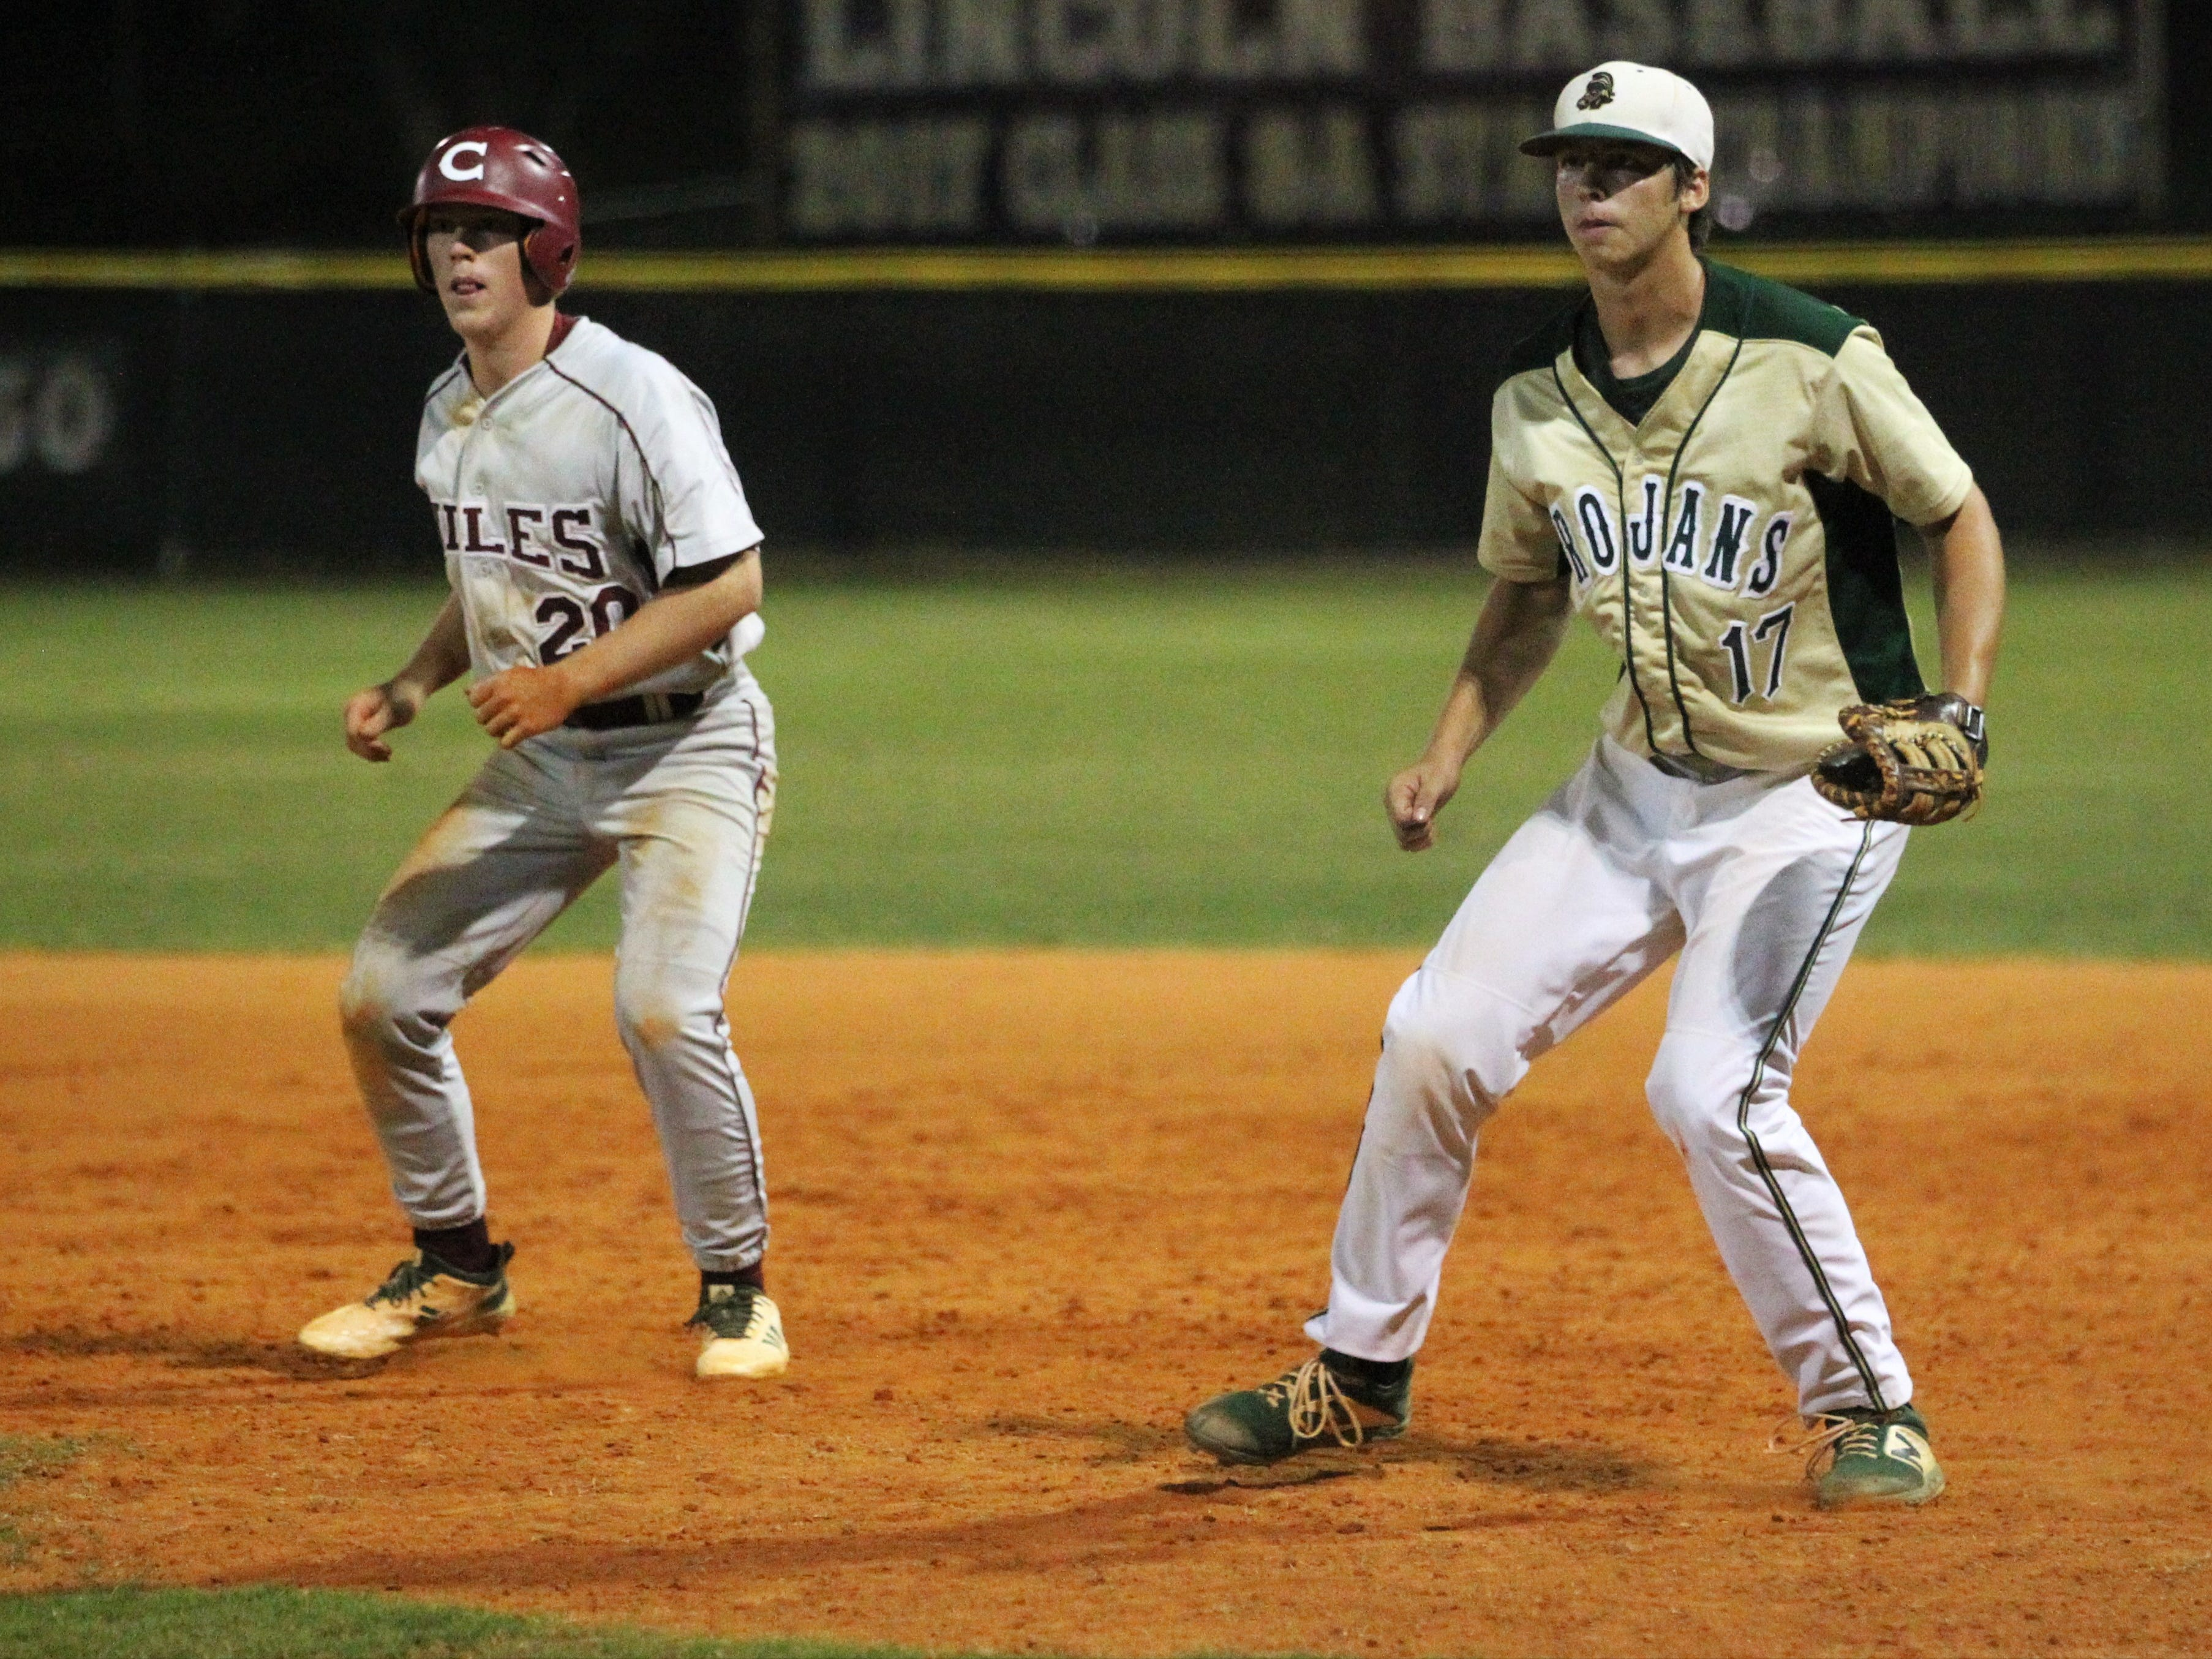 Chiles senior Mason Sanford gets a lead off first base as Lincoln first baseman Tommy Mills waits defensively as Lincoln baseball beat Chiles 5-4  in 10 innings during a District 2-8A championship game on Thursday, May 9, 2019.